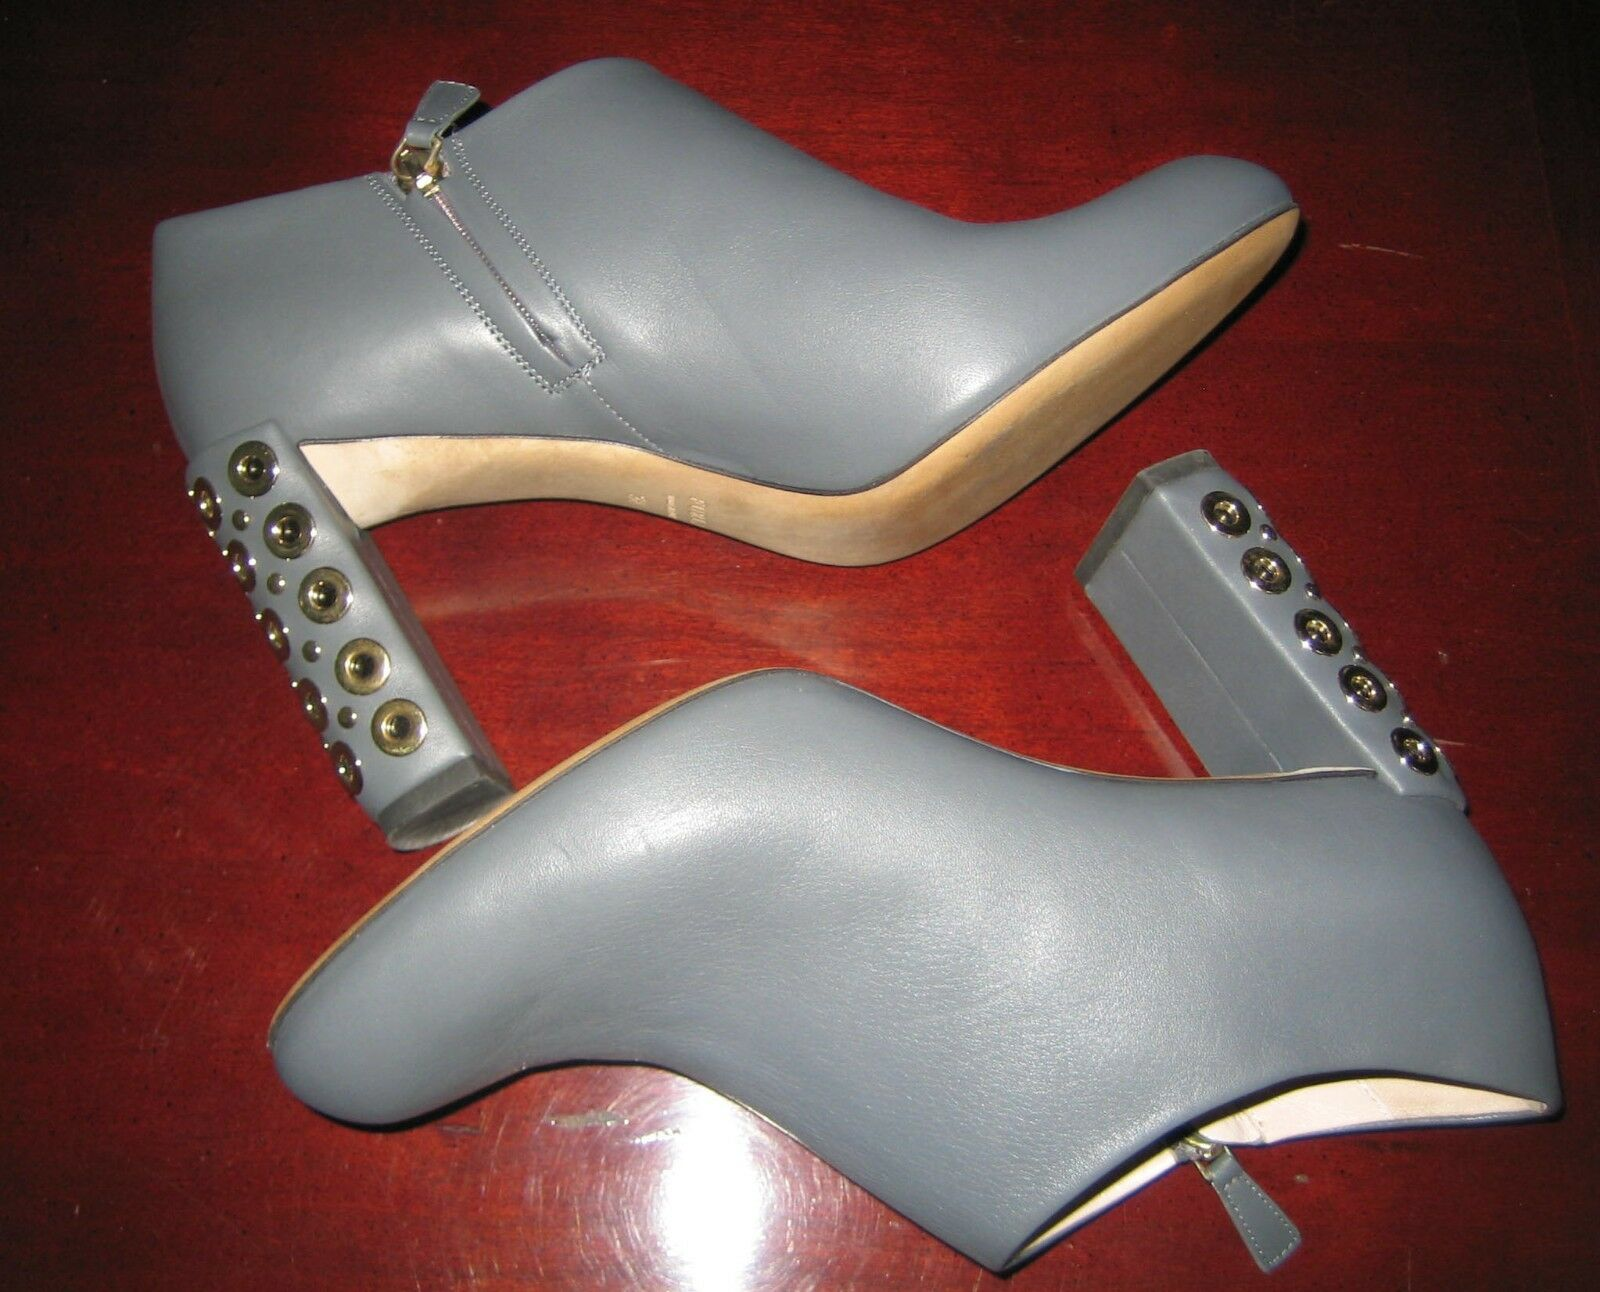 $475 FURLA LEATHER ANKLE BOOTIES LARA IN GRAY STUDDED HEEL 38 7.5 ITALY SOLD OUT